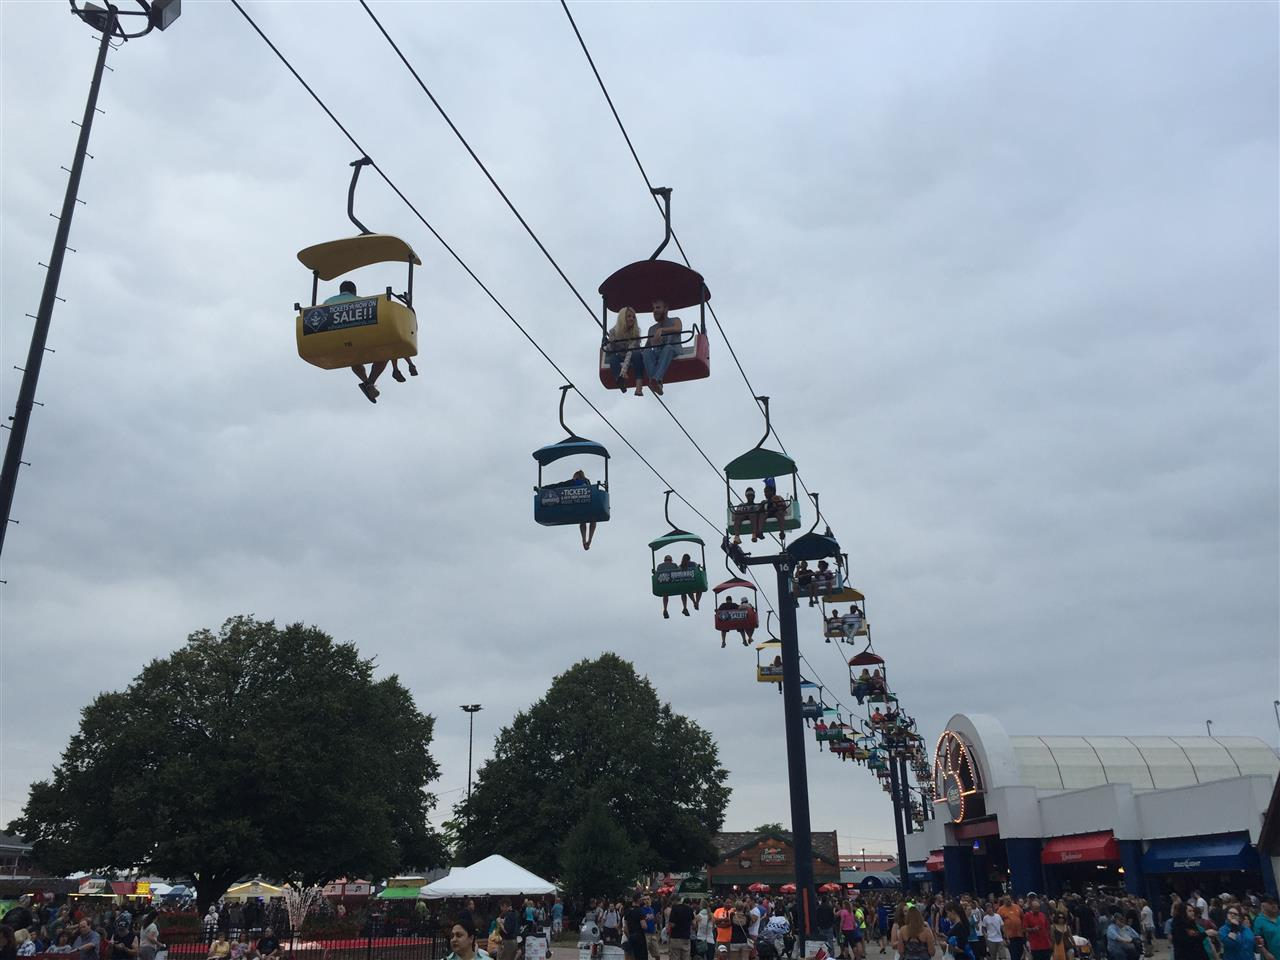 Wisconsin State Fair in West Allis, WI